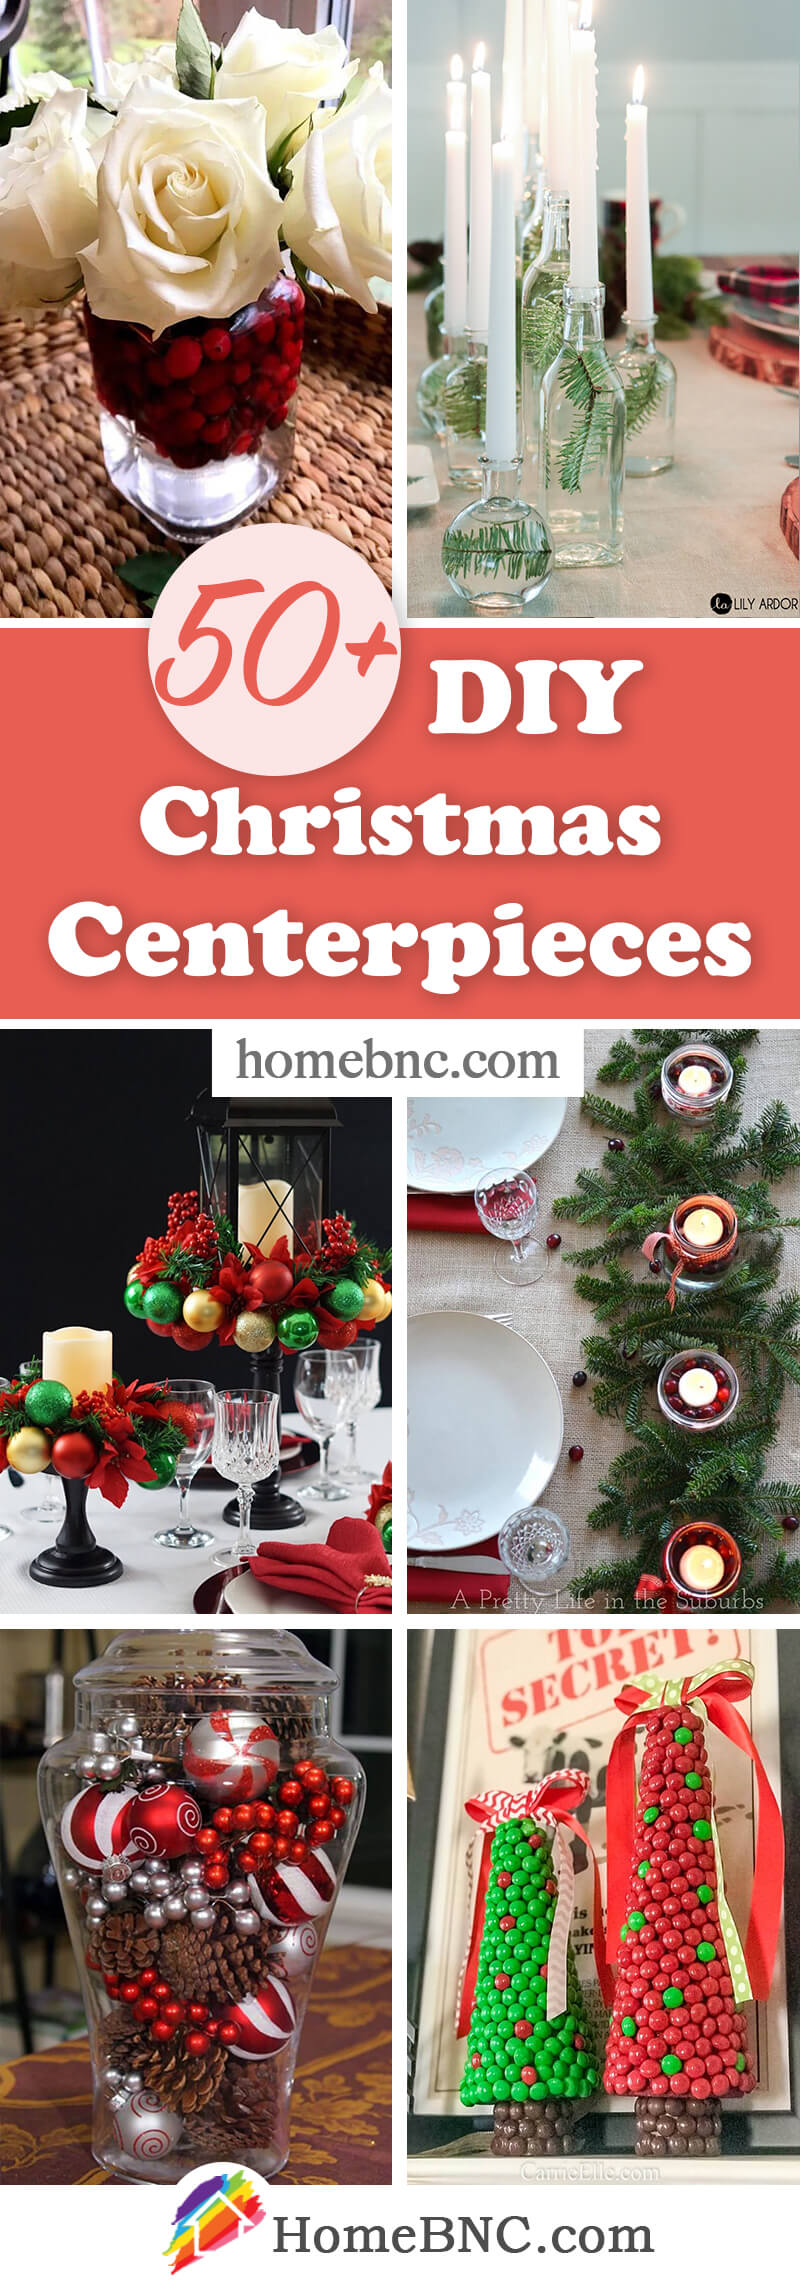 DIY Christmas Centerpieces